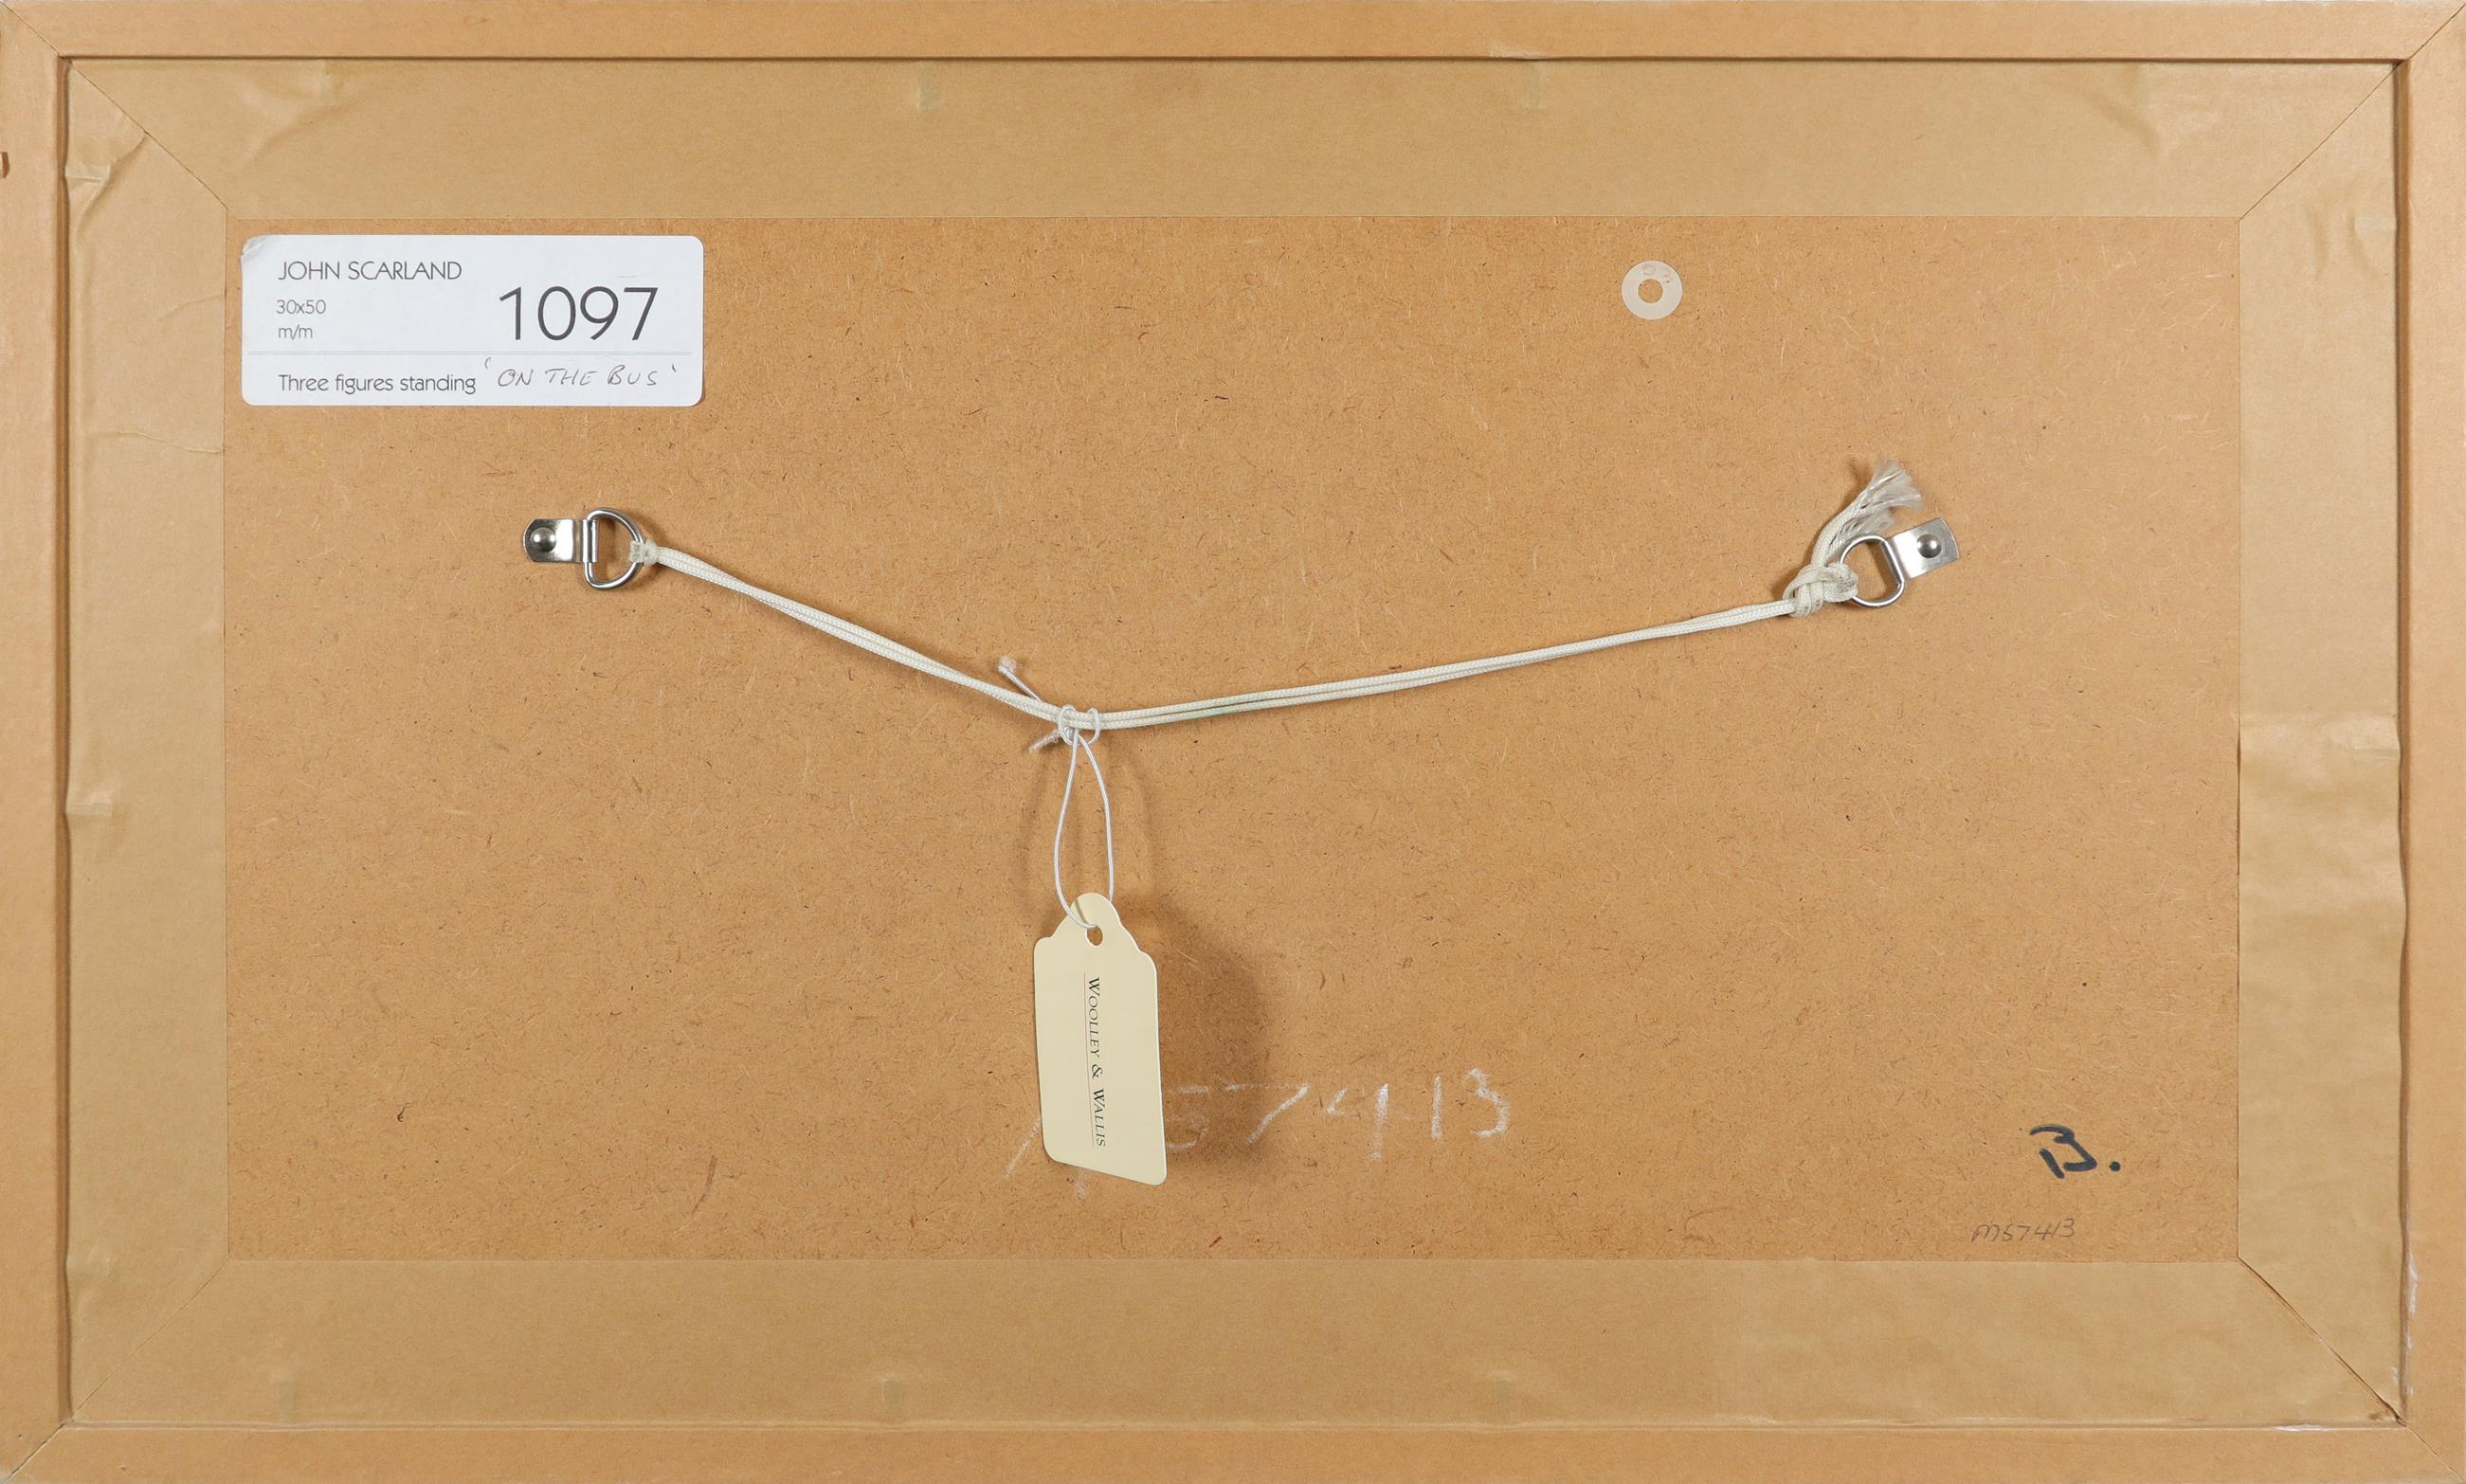 ‡John Scarland (Contemporary) On the bus Signed Scarland (to base) White card and steel against a - Image 3 of 3